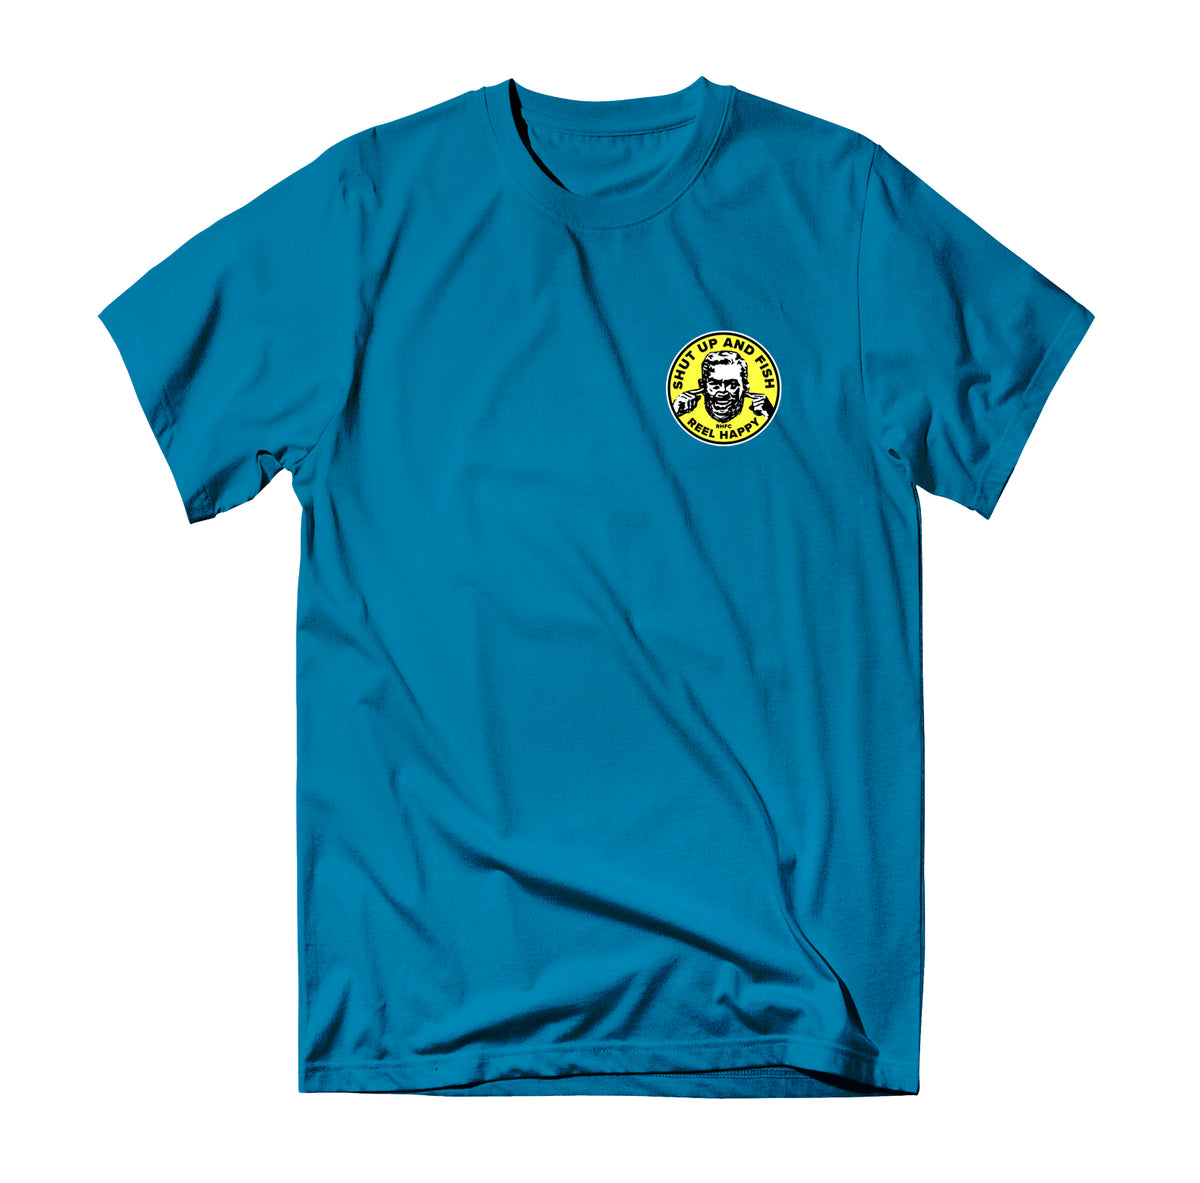 Advice Tee - Sapphire - Reel Happy Co